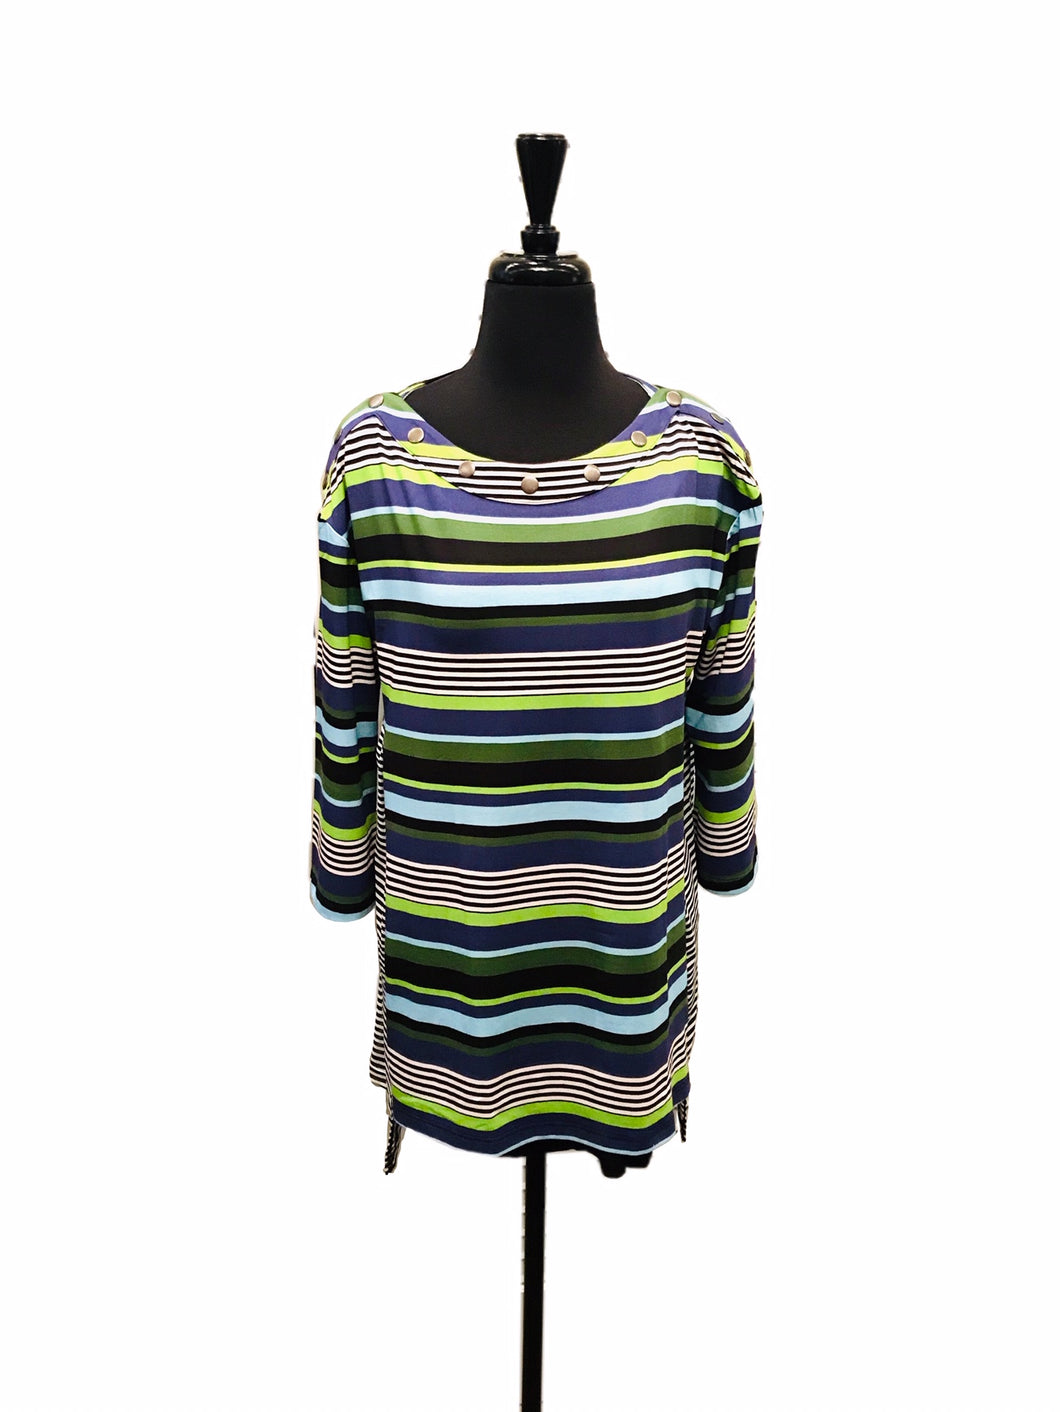 Lynn Ritchie 3/4 Sleeve Boat Neck Stripe Knit Top